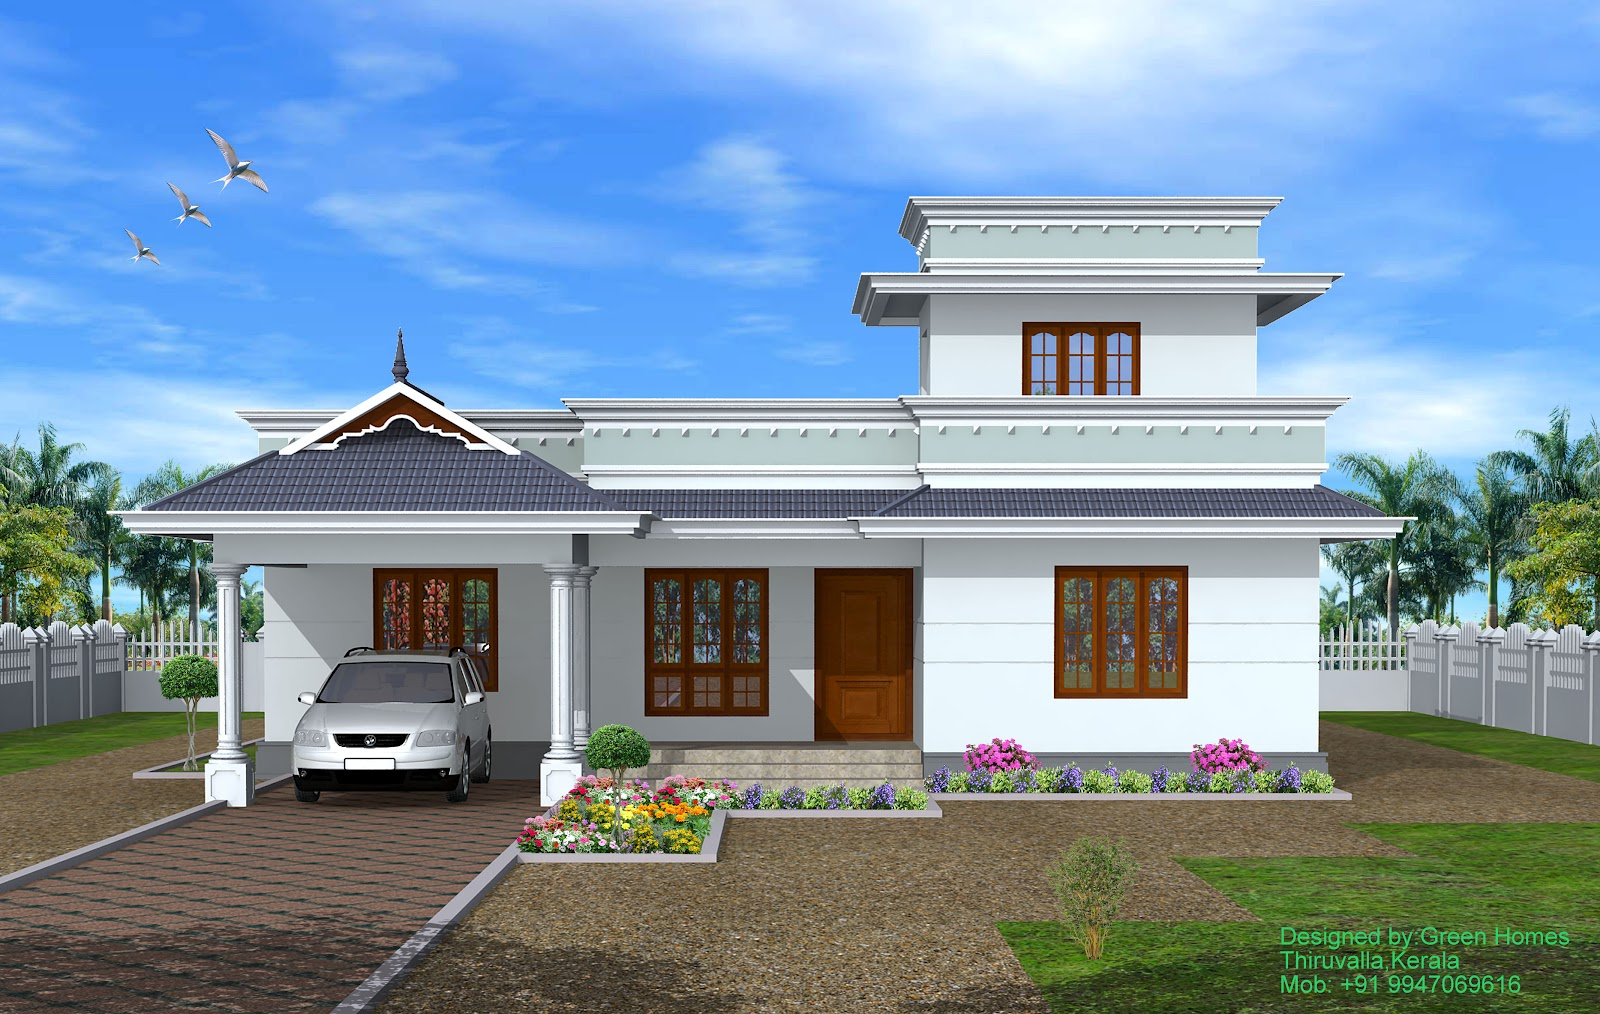 Green homes kerala 4 bhk single storey house 1950 for Home designs single floor